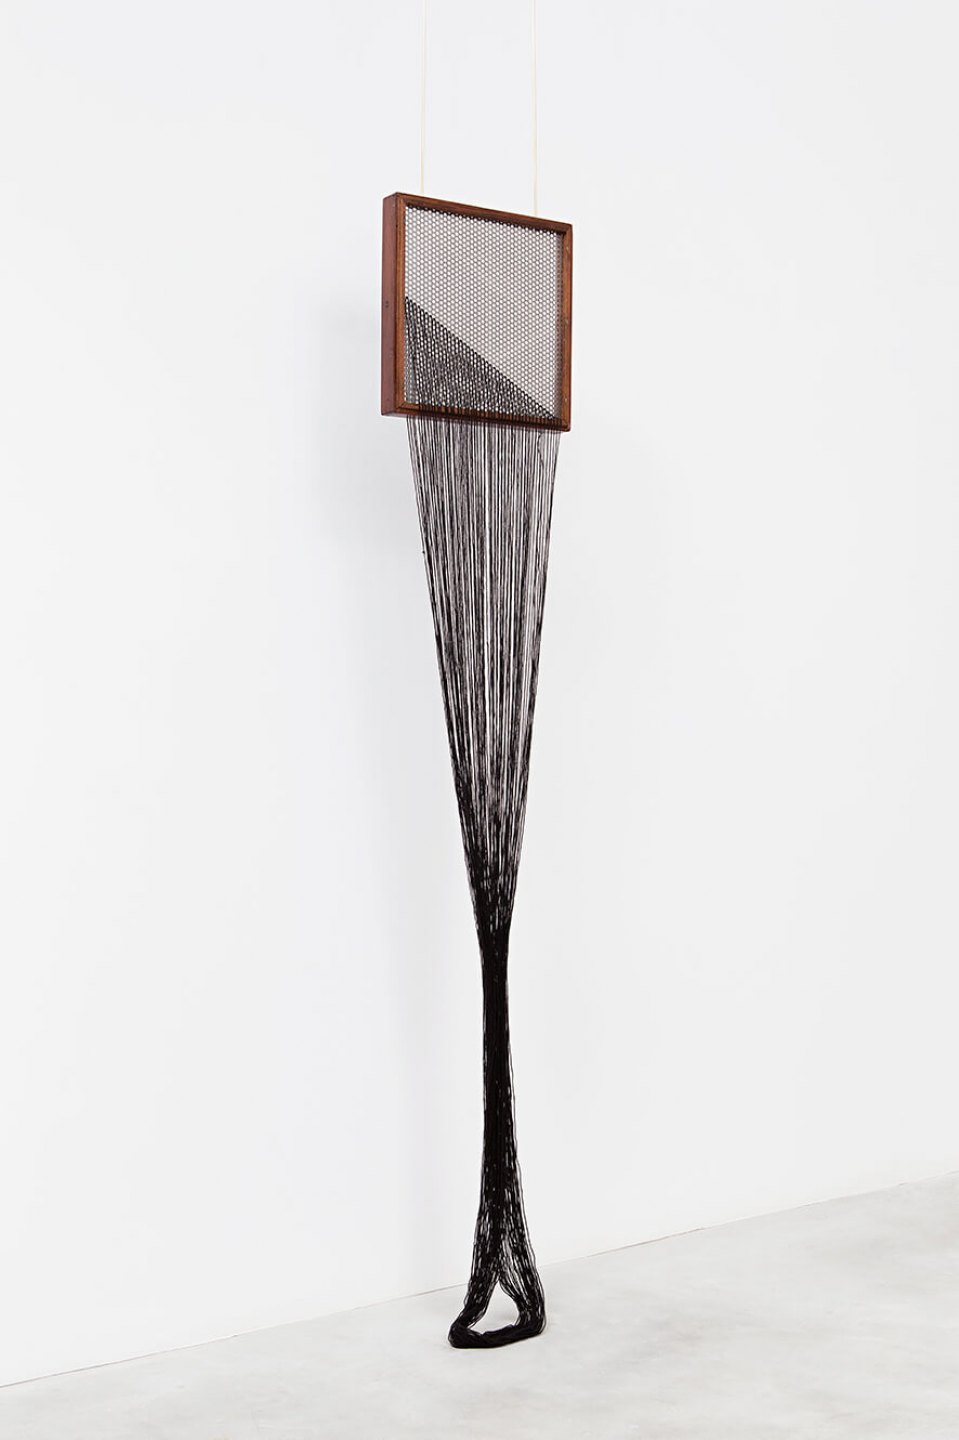 Paloma Bosquê,<em> On provisory interaction (geometry of relations #1</em>), 2015, coffee sieve, wool and brass rods, 175 × 30 cm - Mendes Wood DM